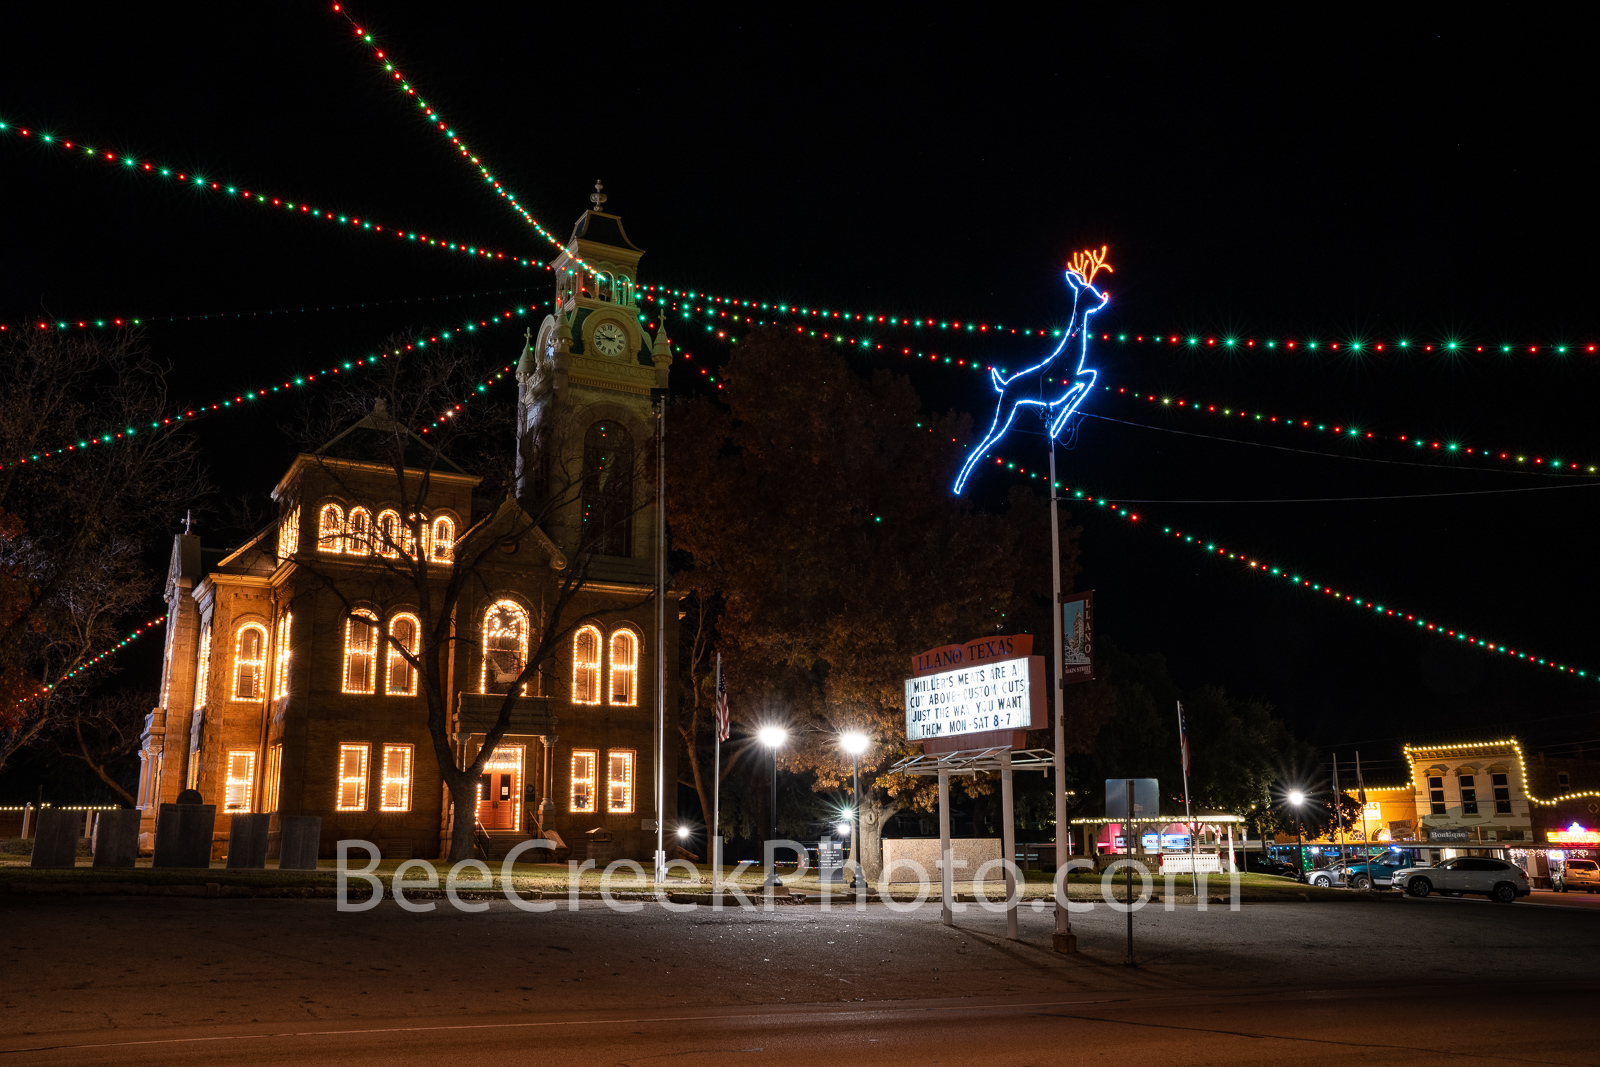 Llano County Courthouse Christmas  - We captured this of the Llano Country Courthouse with their christmas decoration . The windows...